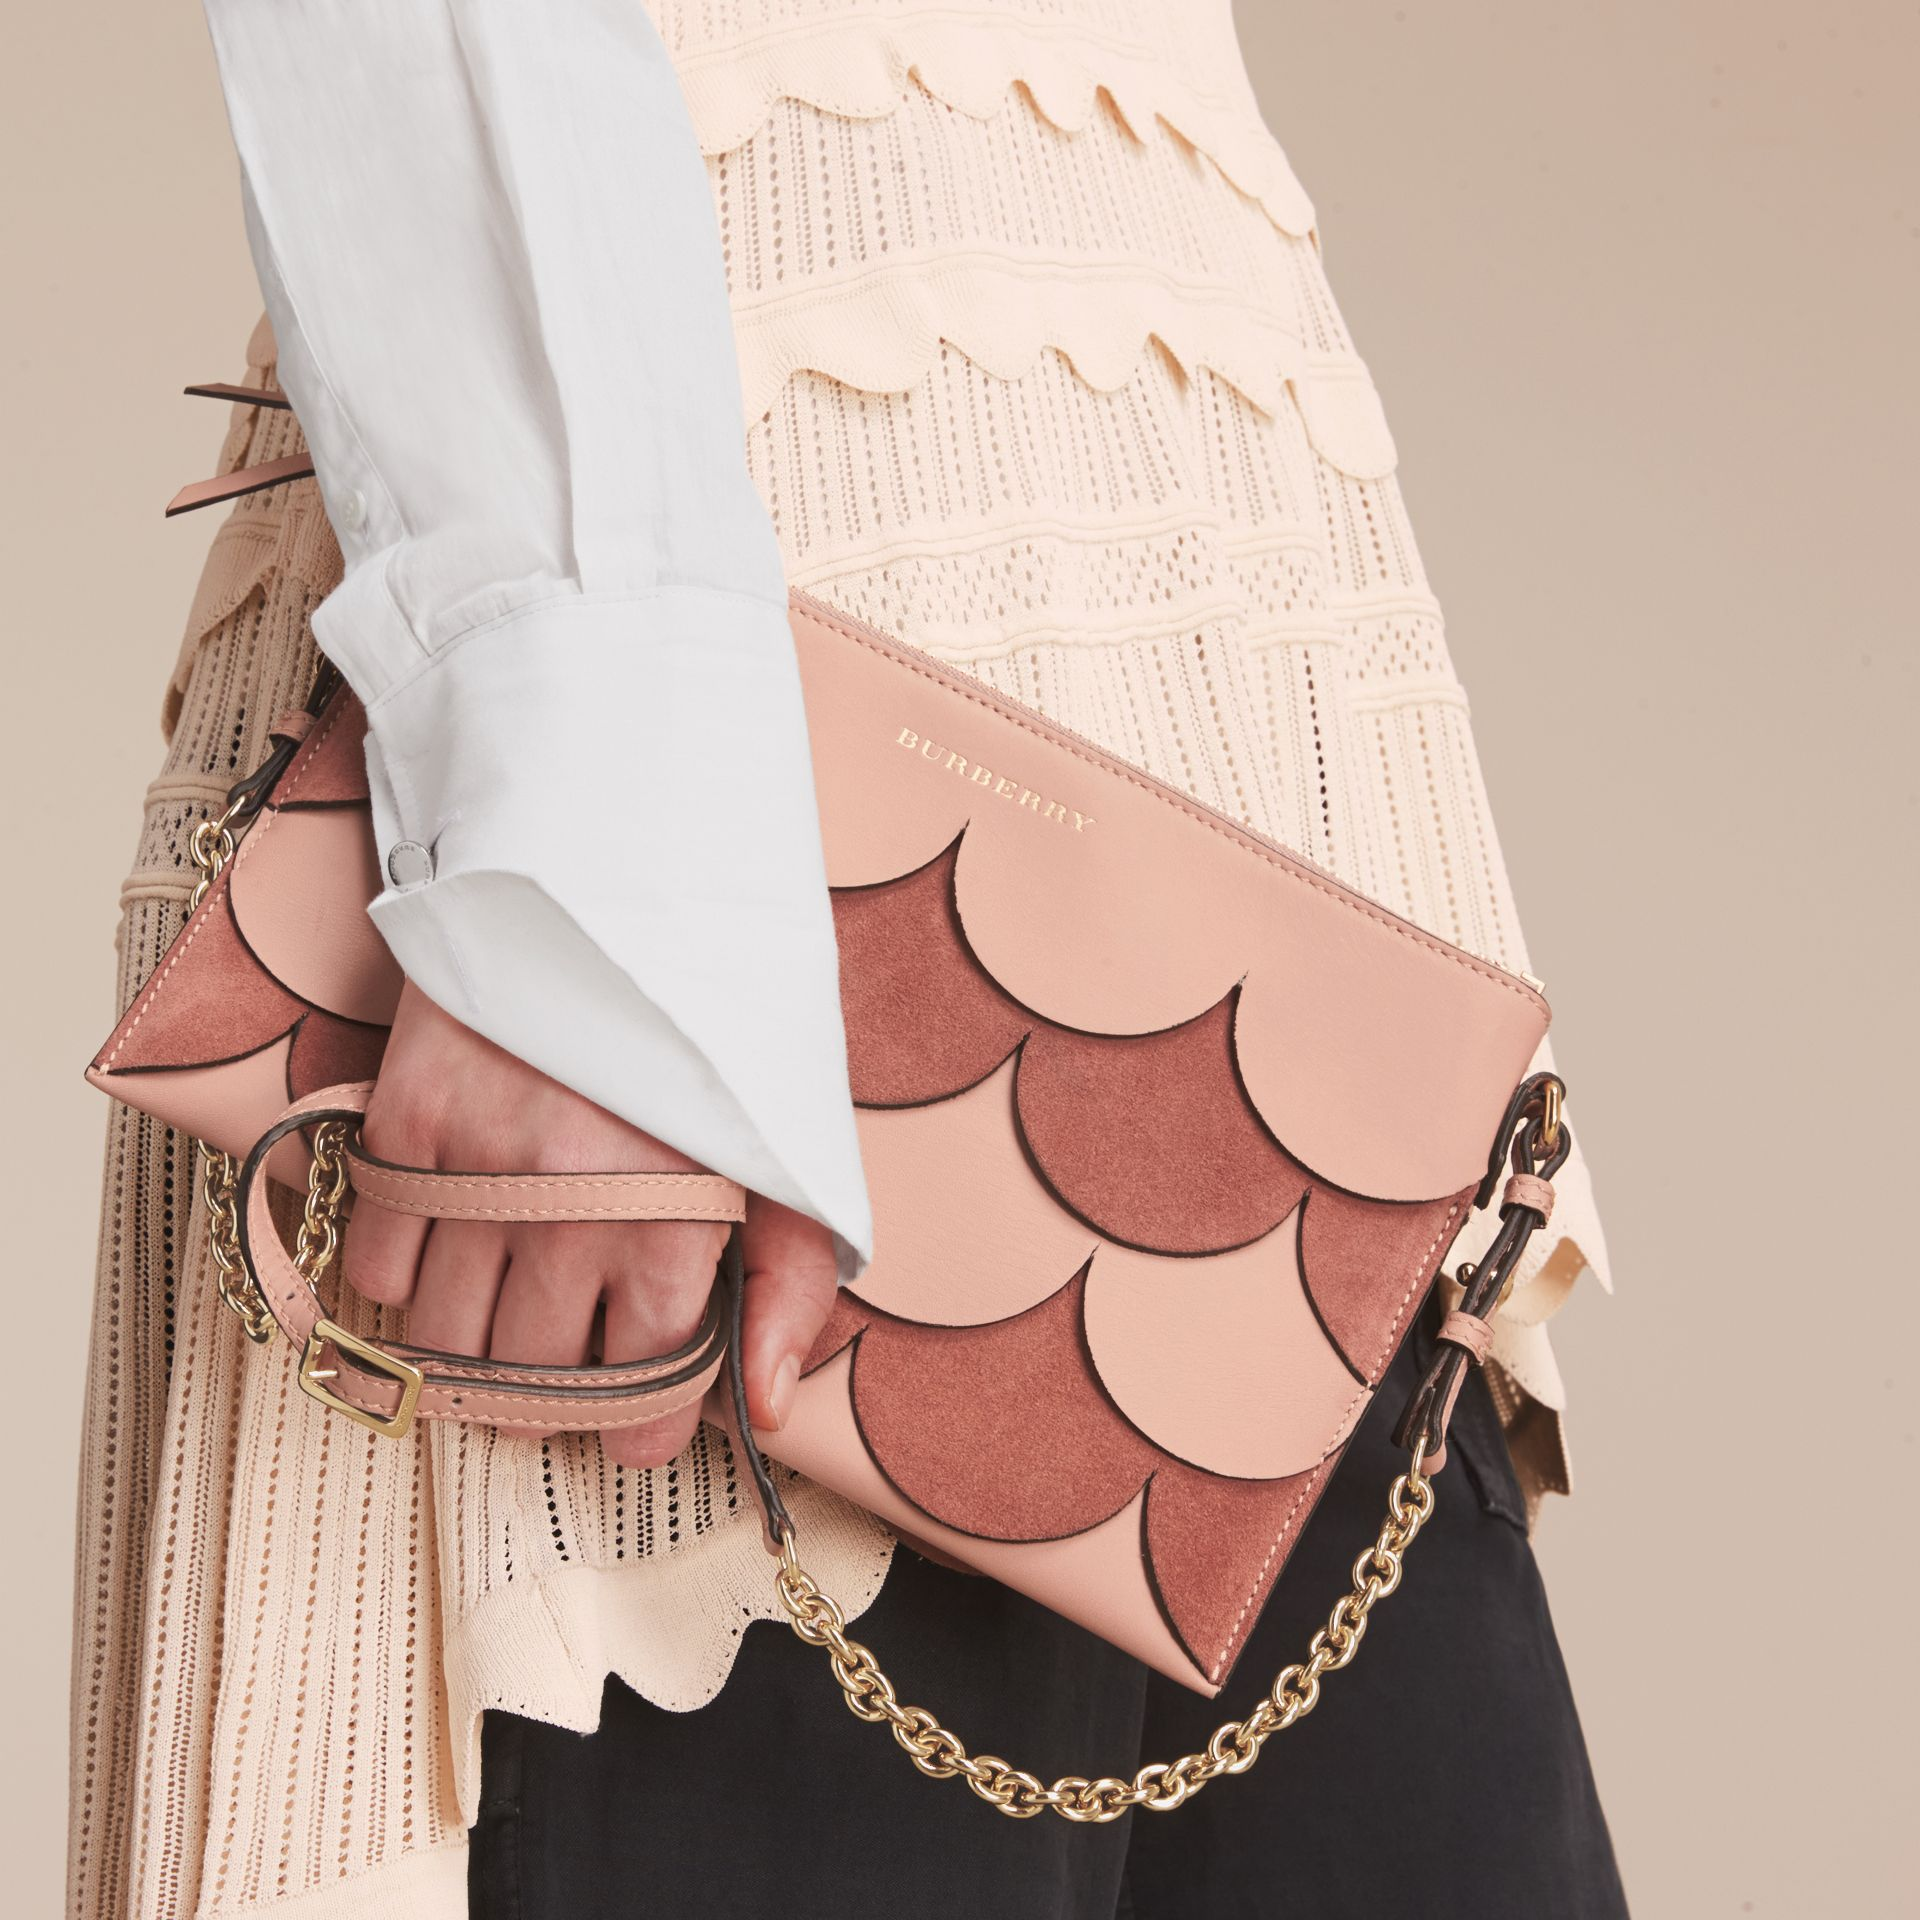 Two-tone Scalloped Leather and Suede Clutch Bag in Ash Rose - Women | Burberry - gallery image 3